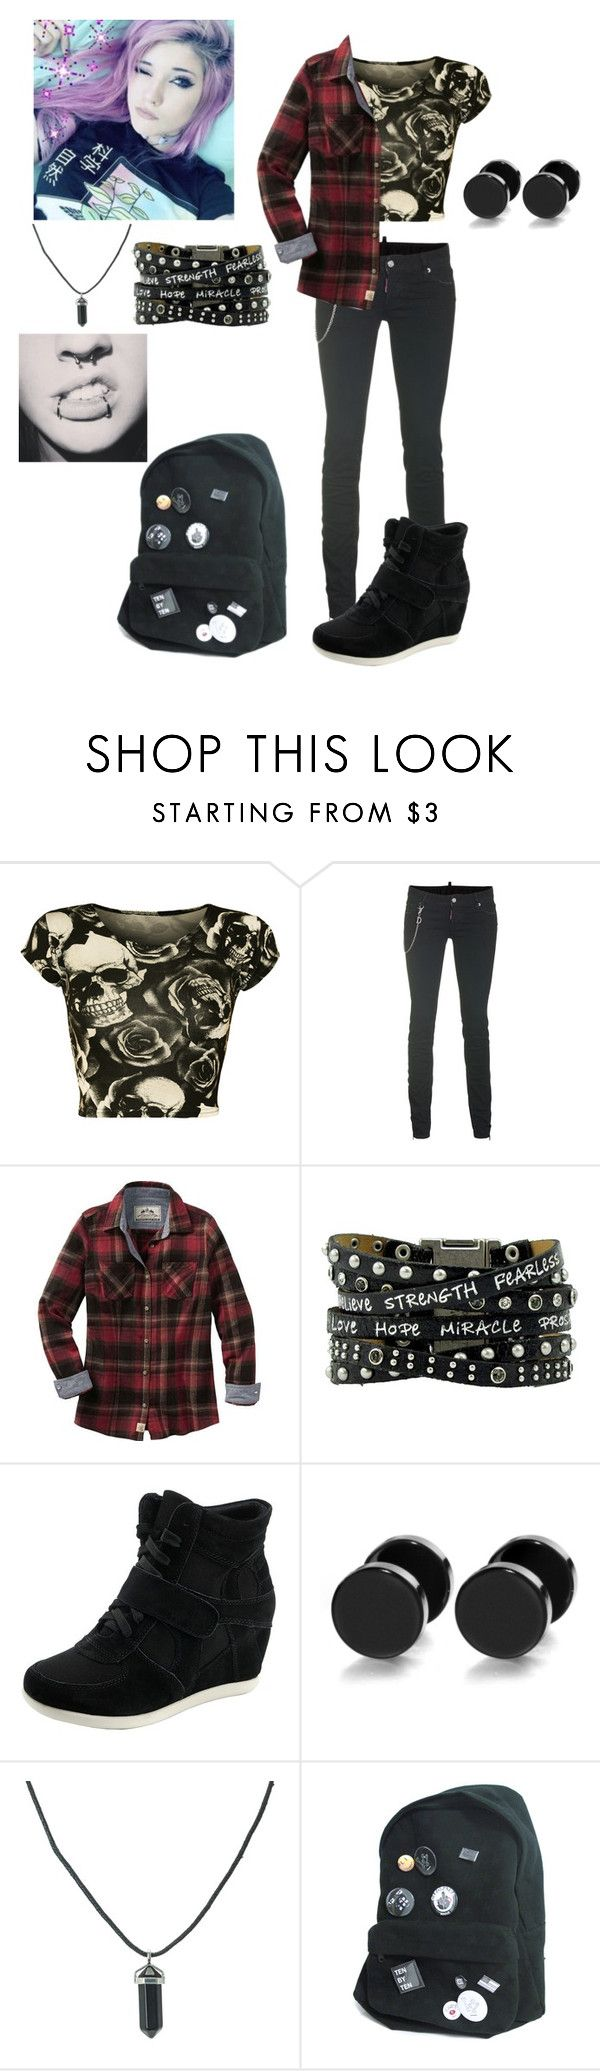 """Tori Black ((Rp anyone?))"" by coffeeismysoul ❤ liked on Polyvore featuring WearAll and Dsquared2"